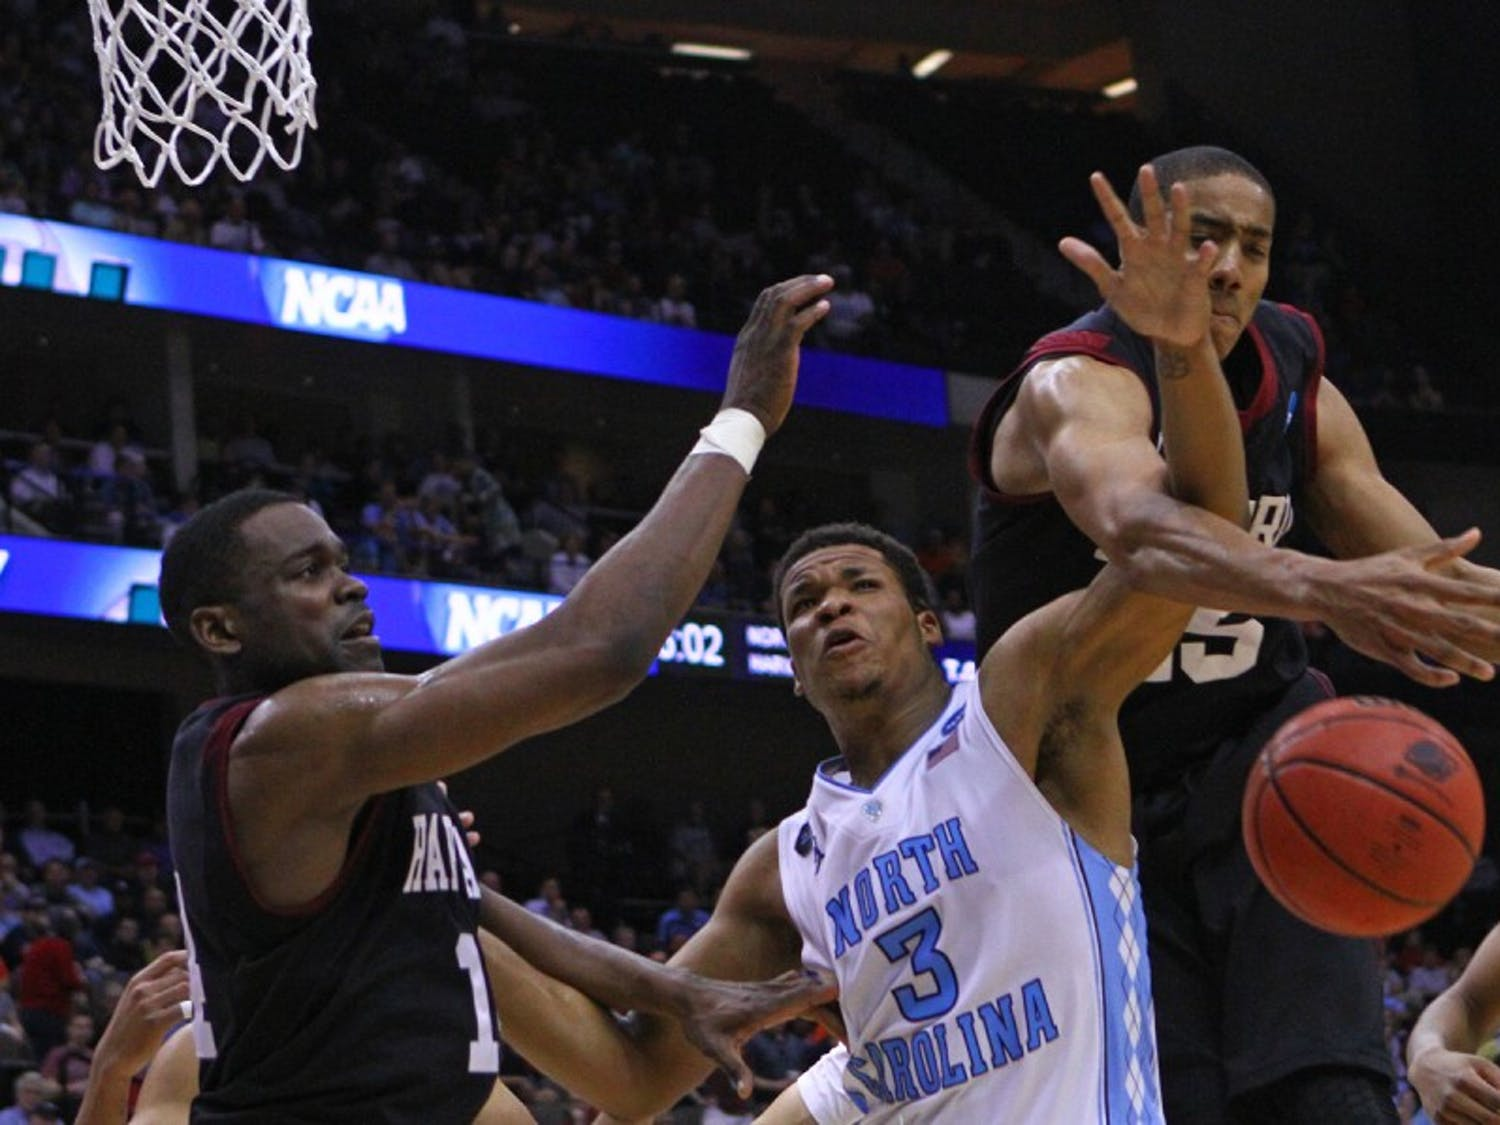 UNC forward Kennedy Meeks (3) gets tangled up with Harvard playersThursday in Jacksonville, Fla.